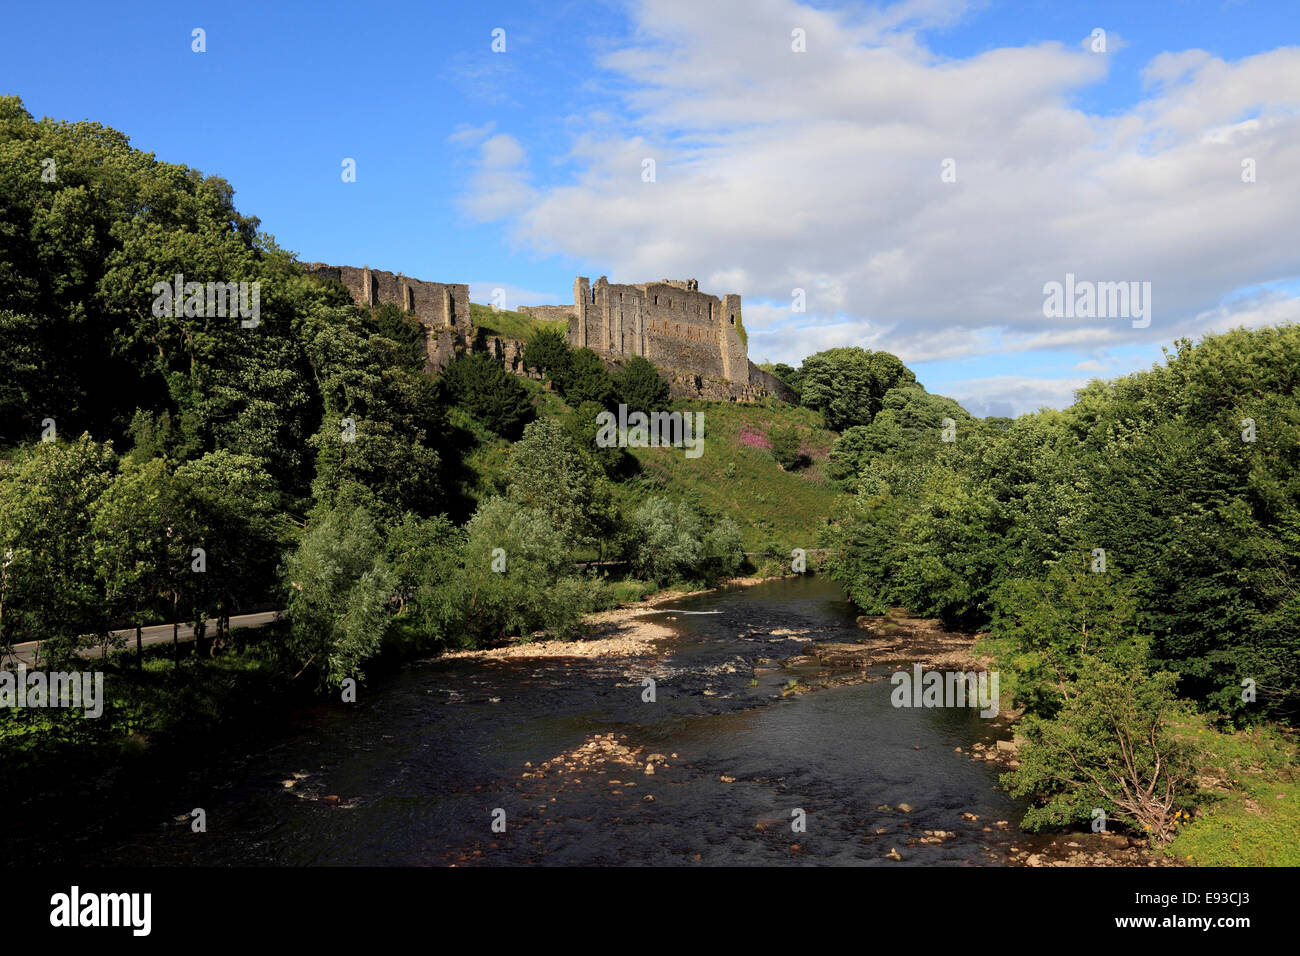 3260.The Castle, Richmond, North Yorkshire, UK Stock Photo